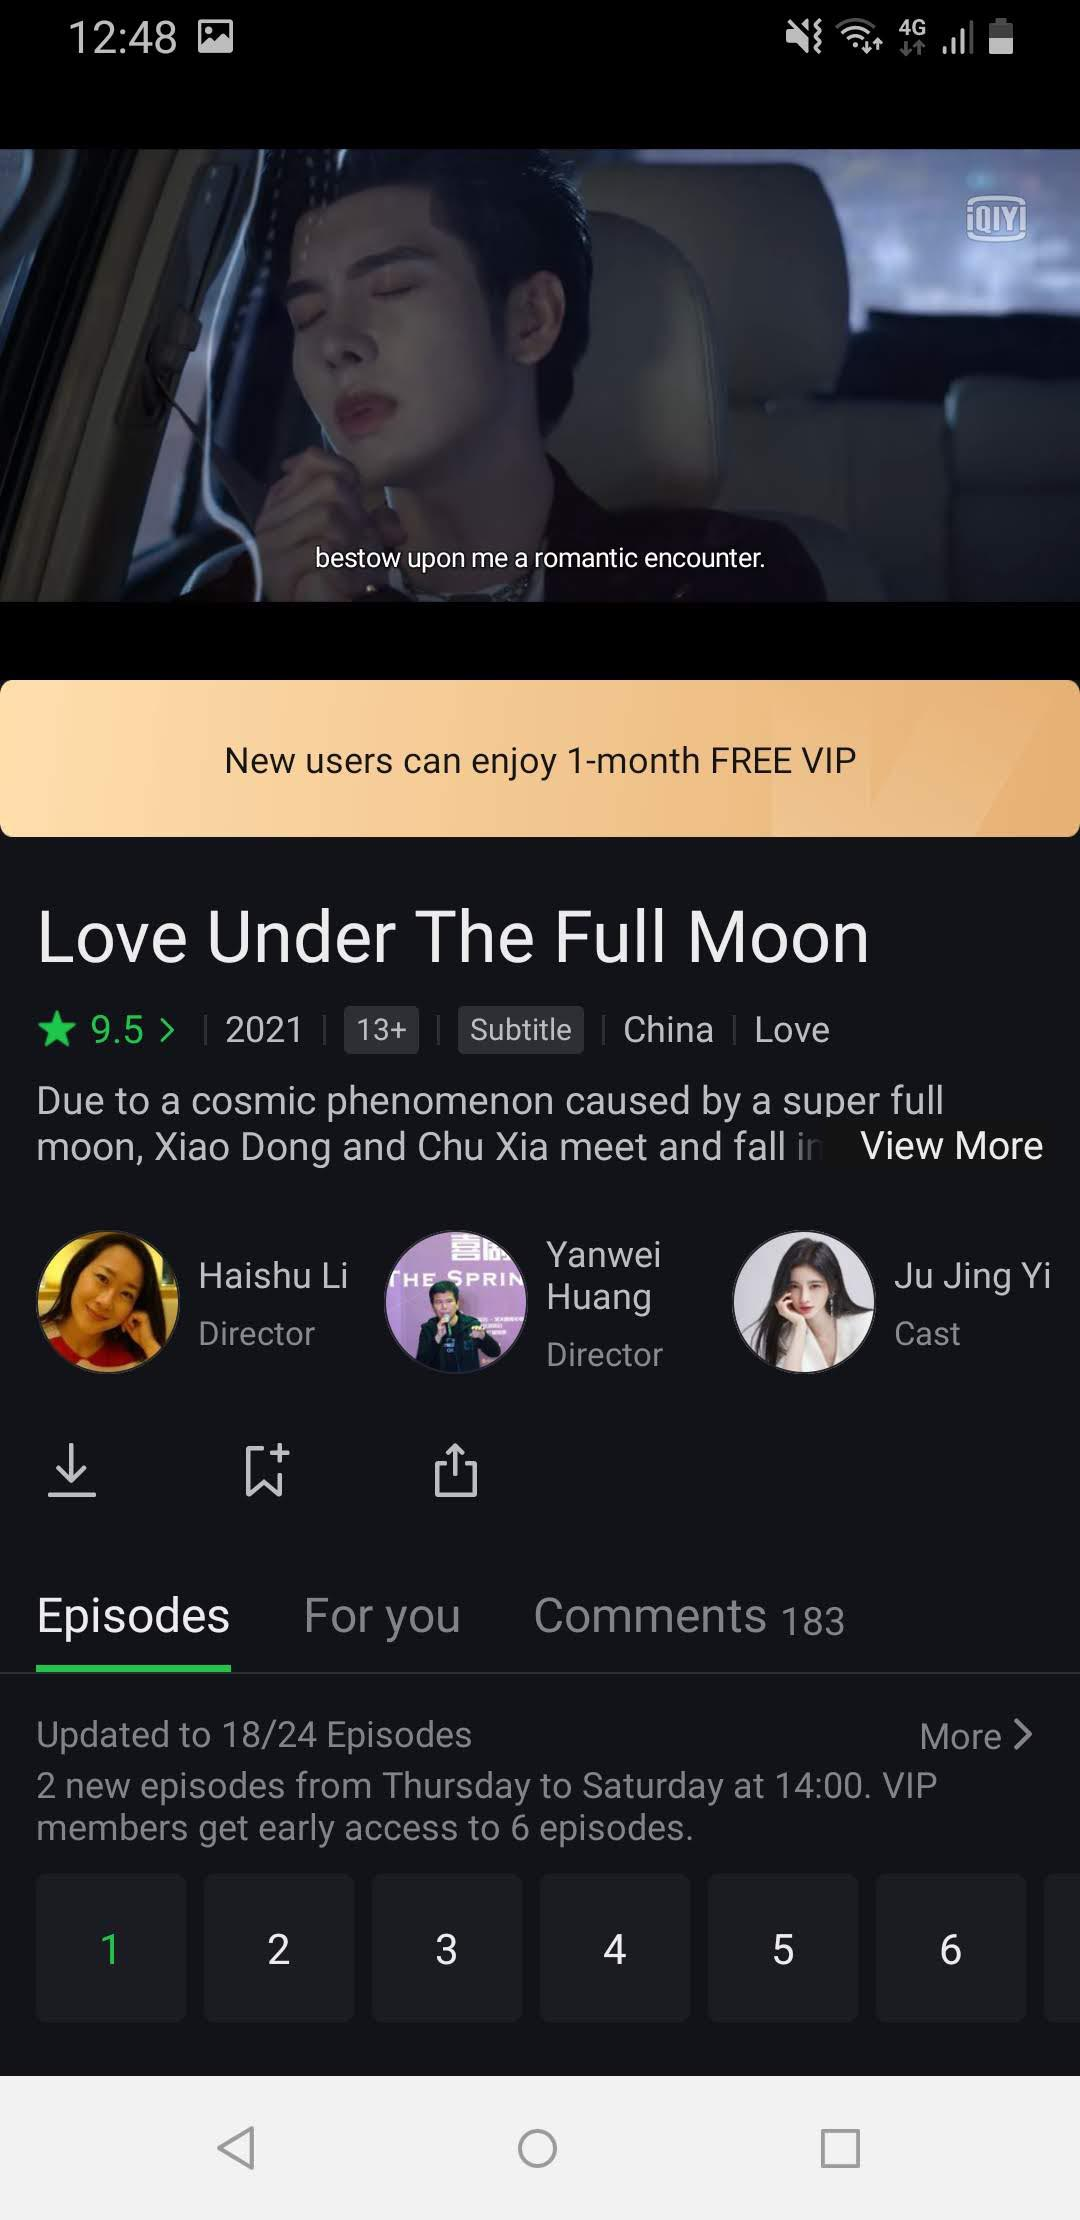 IQIYI love under the full moon IQIYI: the Chinese Netflix that you can watch for free